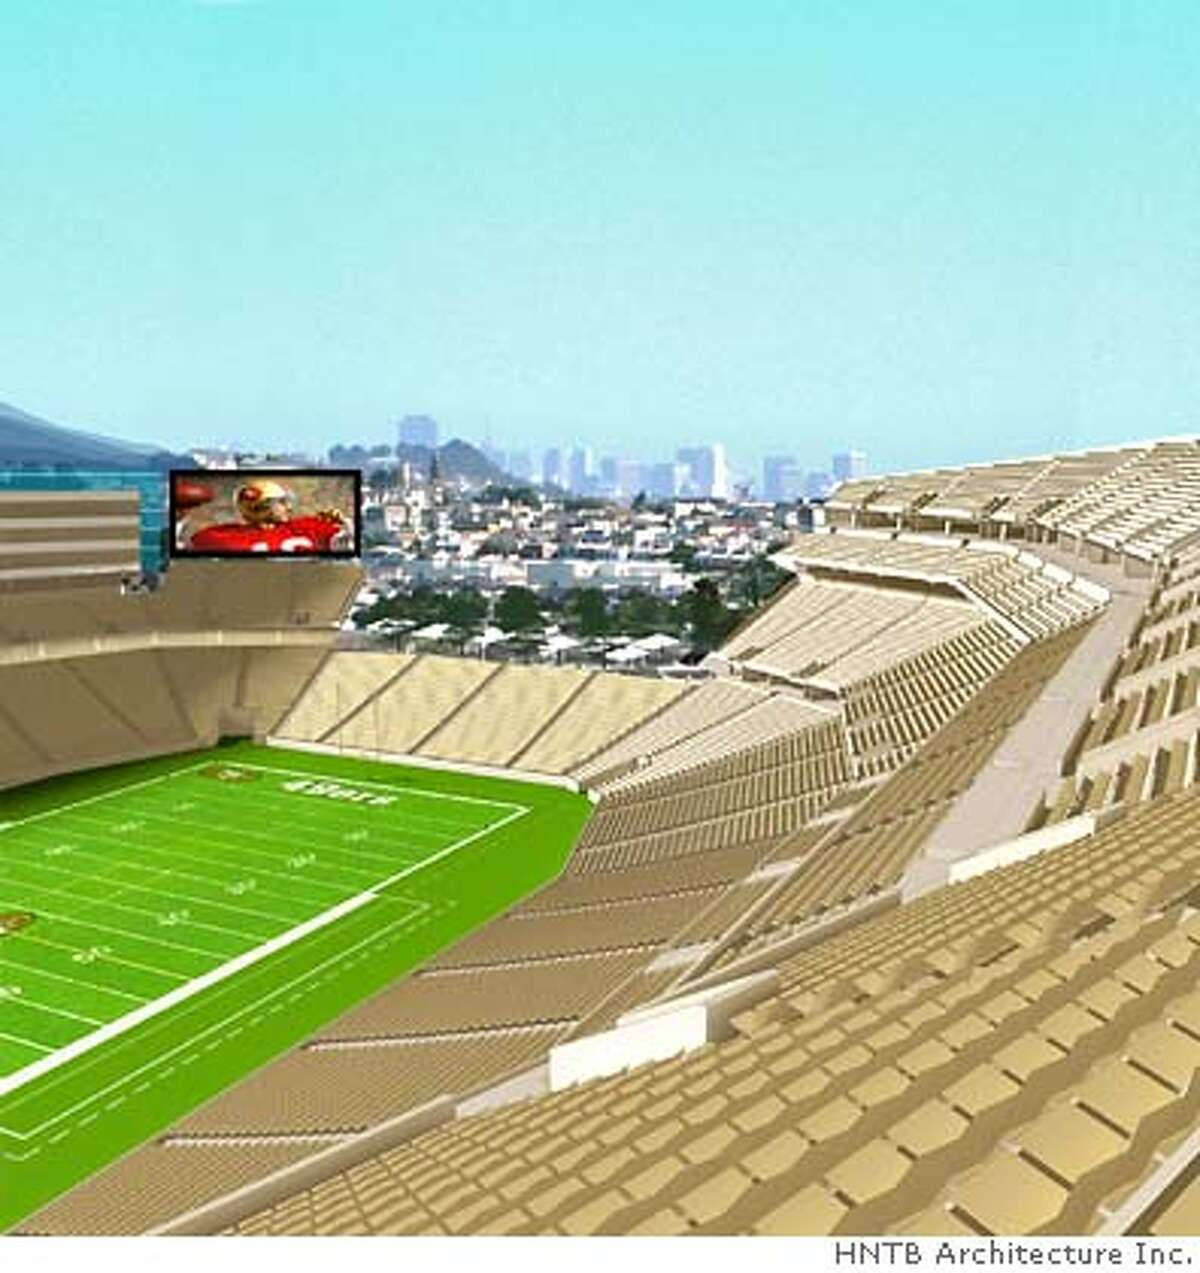 View from upper level seats of proposed new SF 49er Stadium looking north to area of the stadium that would be open to a view of the city of San Francisco. Credit: HNTB Architecture Inc.